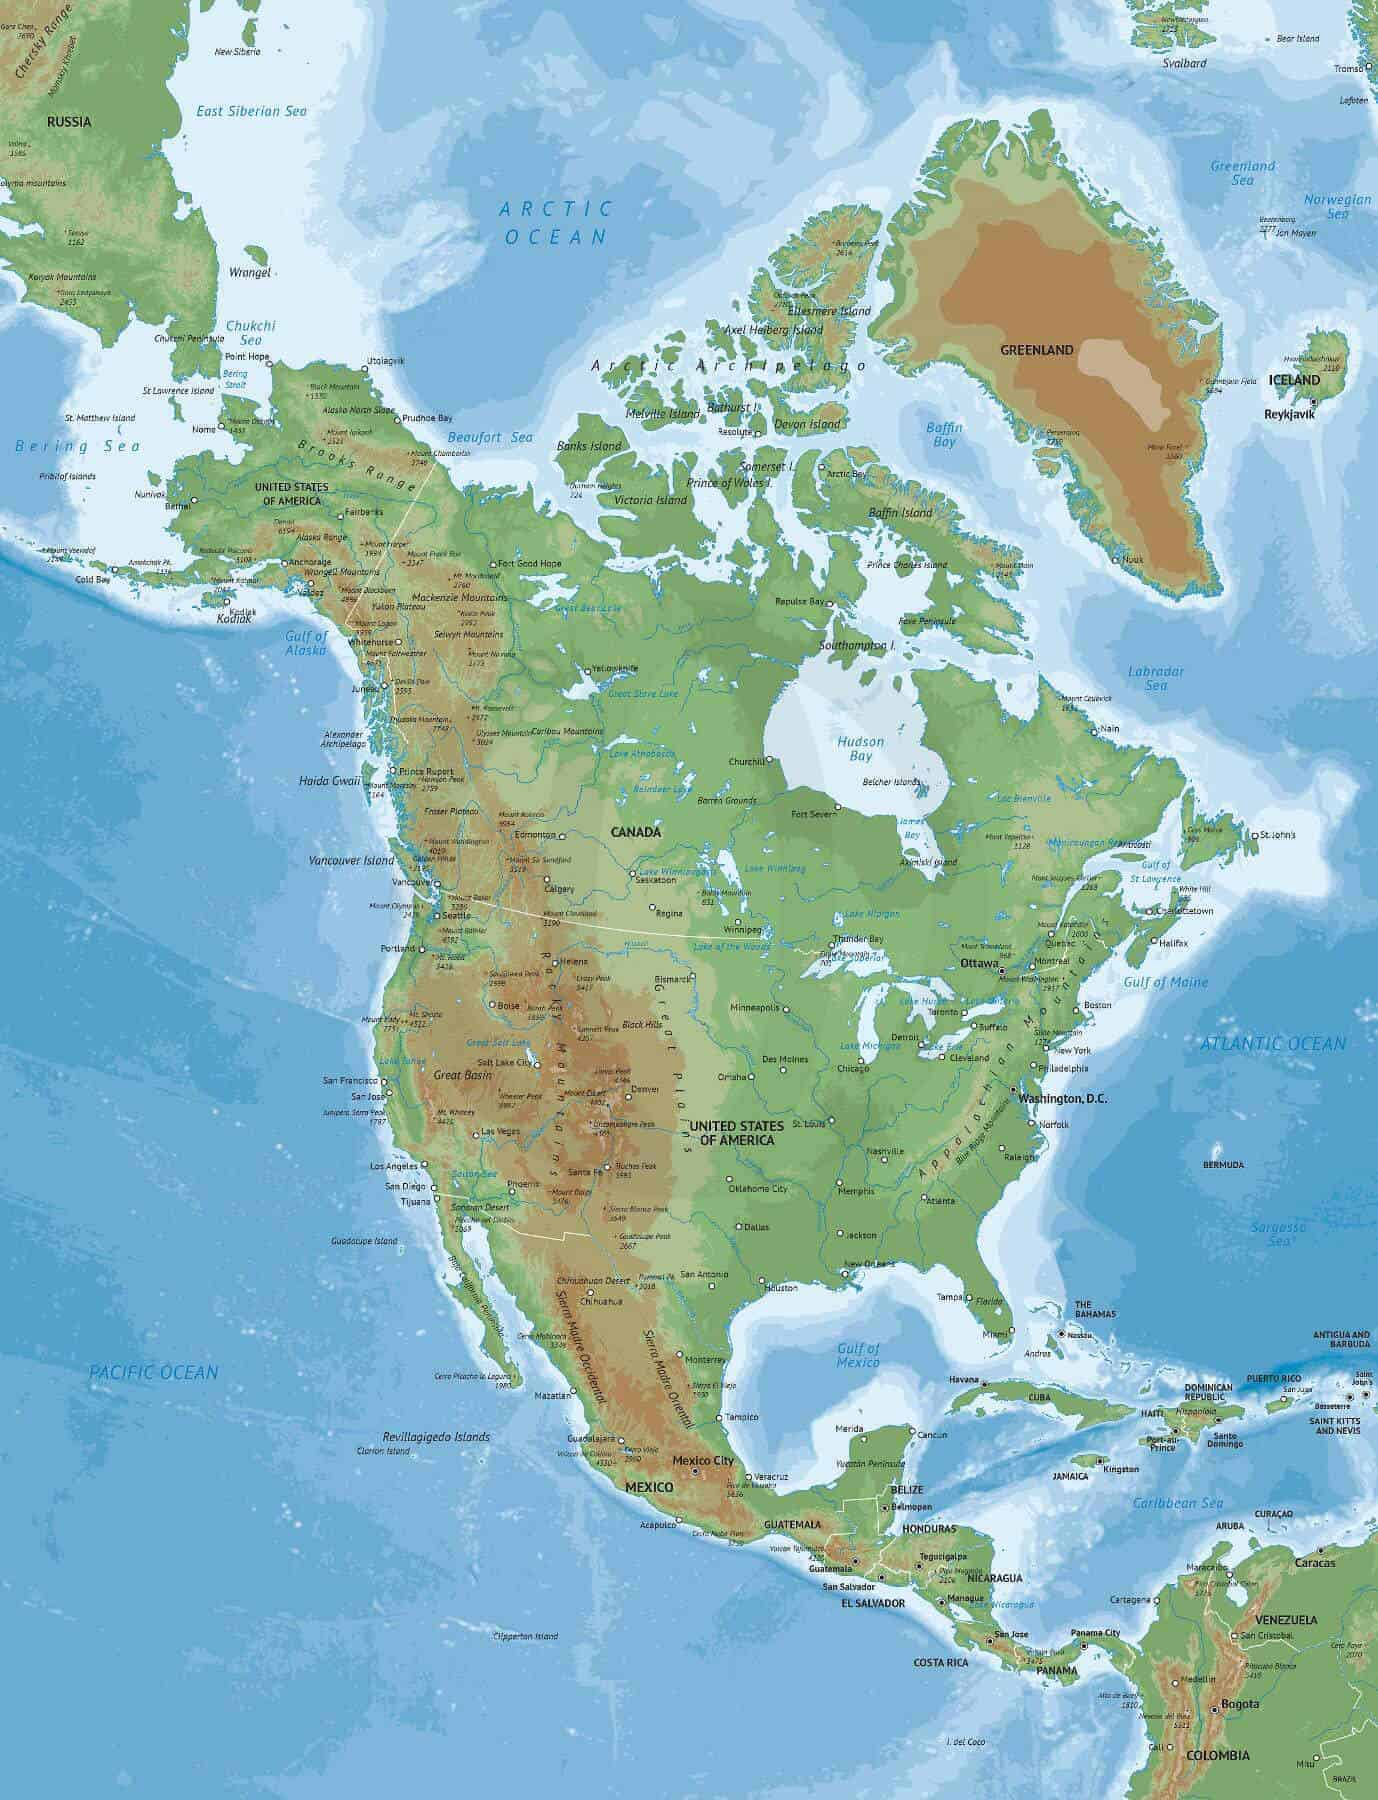 Map of North America Naturalist style A Map Of The North American Continent on map of the north east region, map of the continent of australia, map of north american countries, map of the north american union, map of the north polar region, map of the north american prairie, drawing of the north american continent, america continent, north and south american continent, map of the north island of new zealand, map of south american continent, map of the north eastern united states, map of southern continent, map of eurasian continent, map of the north america, map of the north africa, map of the african continent, map of european continent, map of the north european plain,